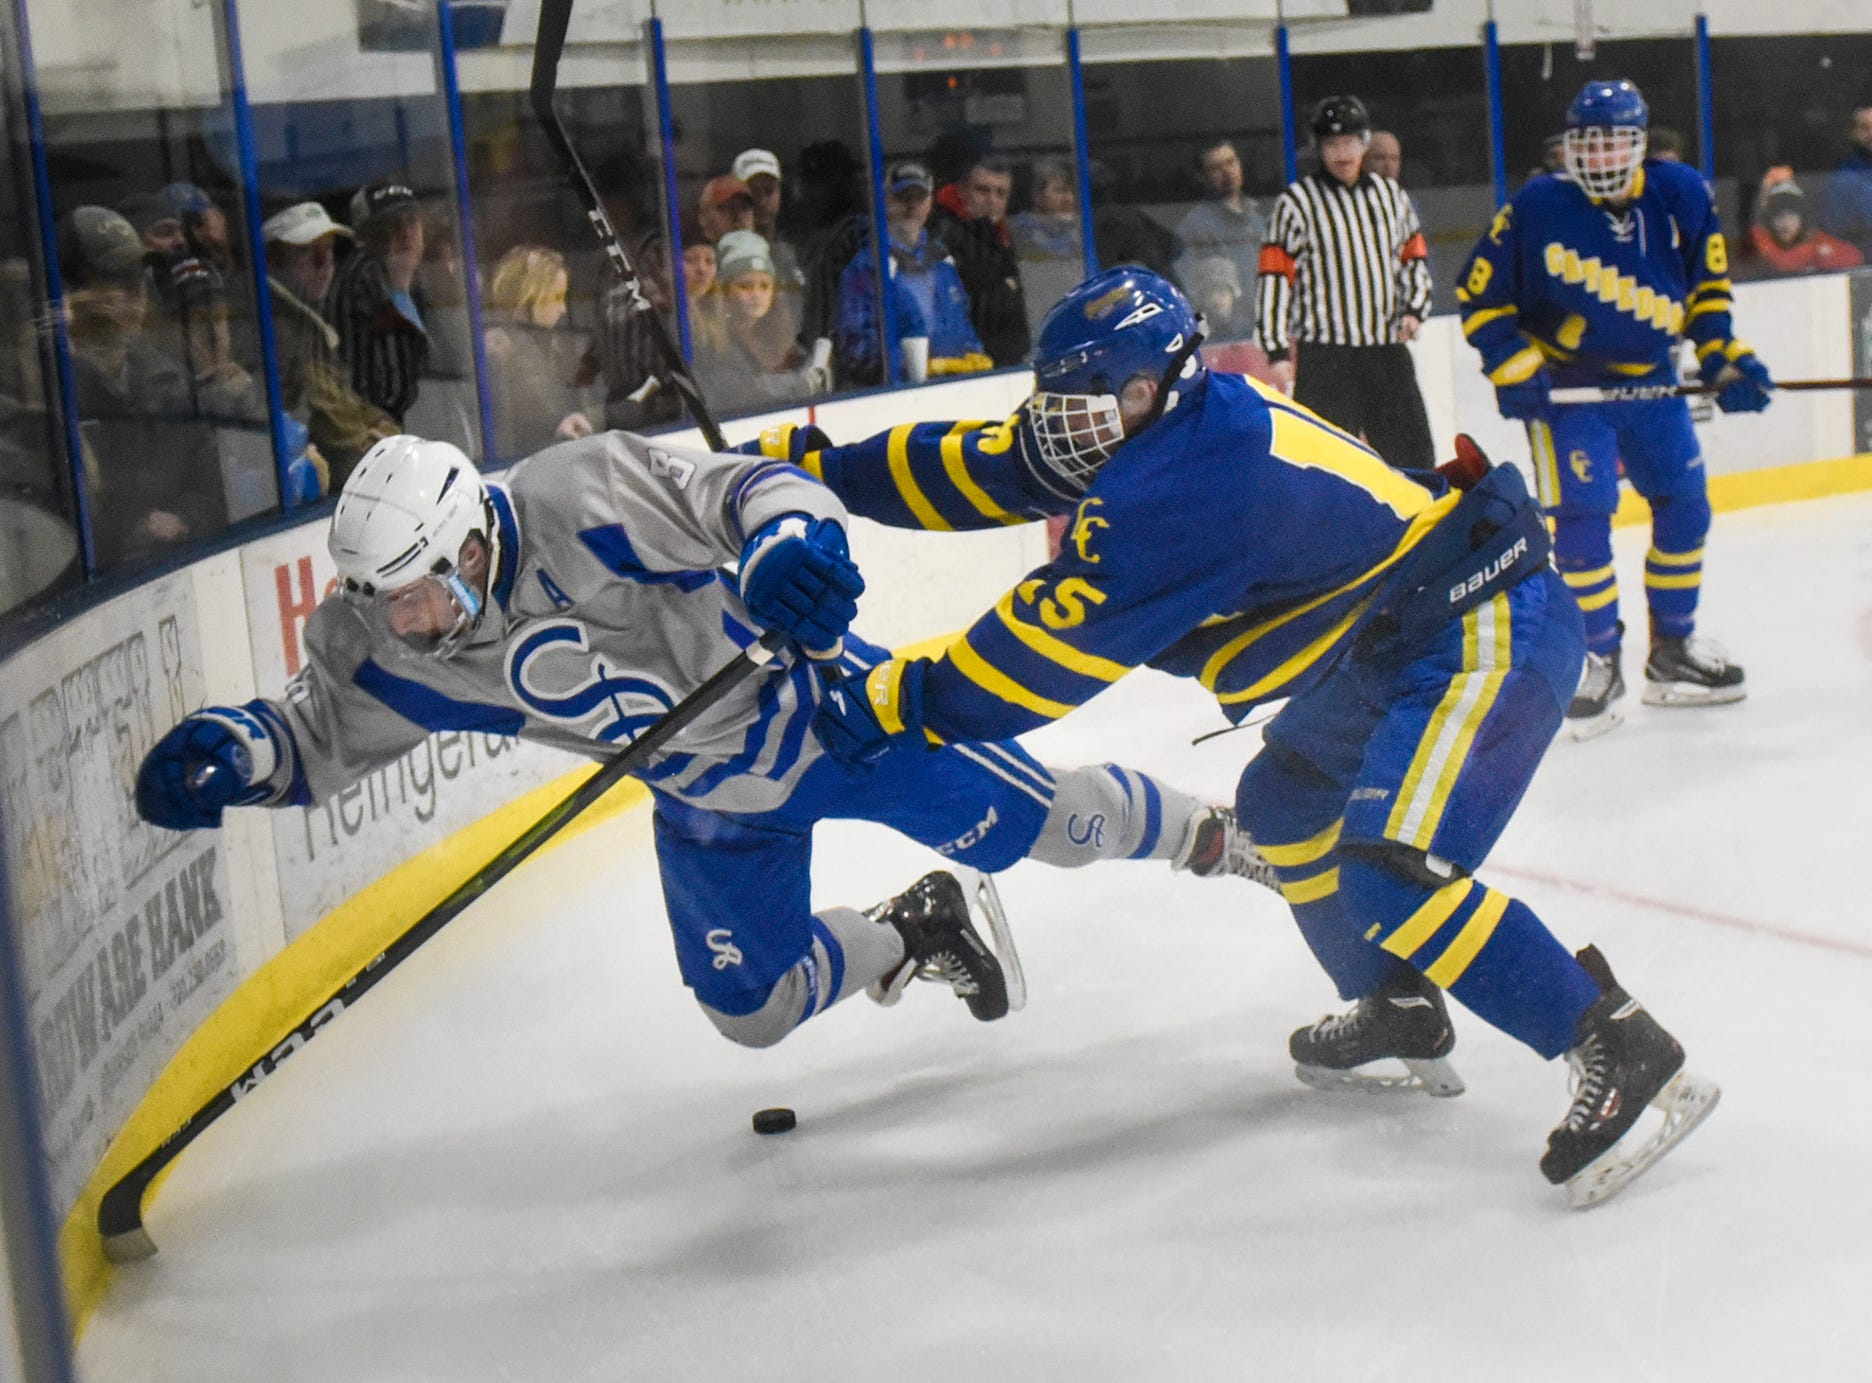 Connor Kalthoff of Sartell and CJ Zins of Cathedral battle along the boards during the Thursday, Jan. 10, game at Bernicks Arena in Sartell.